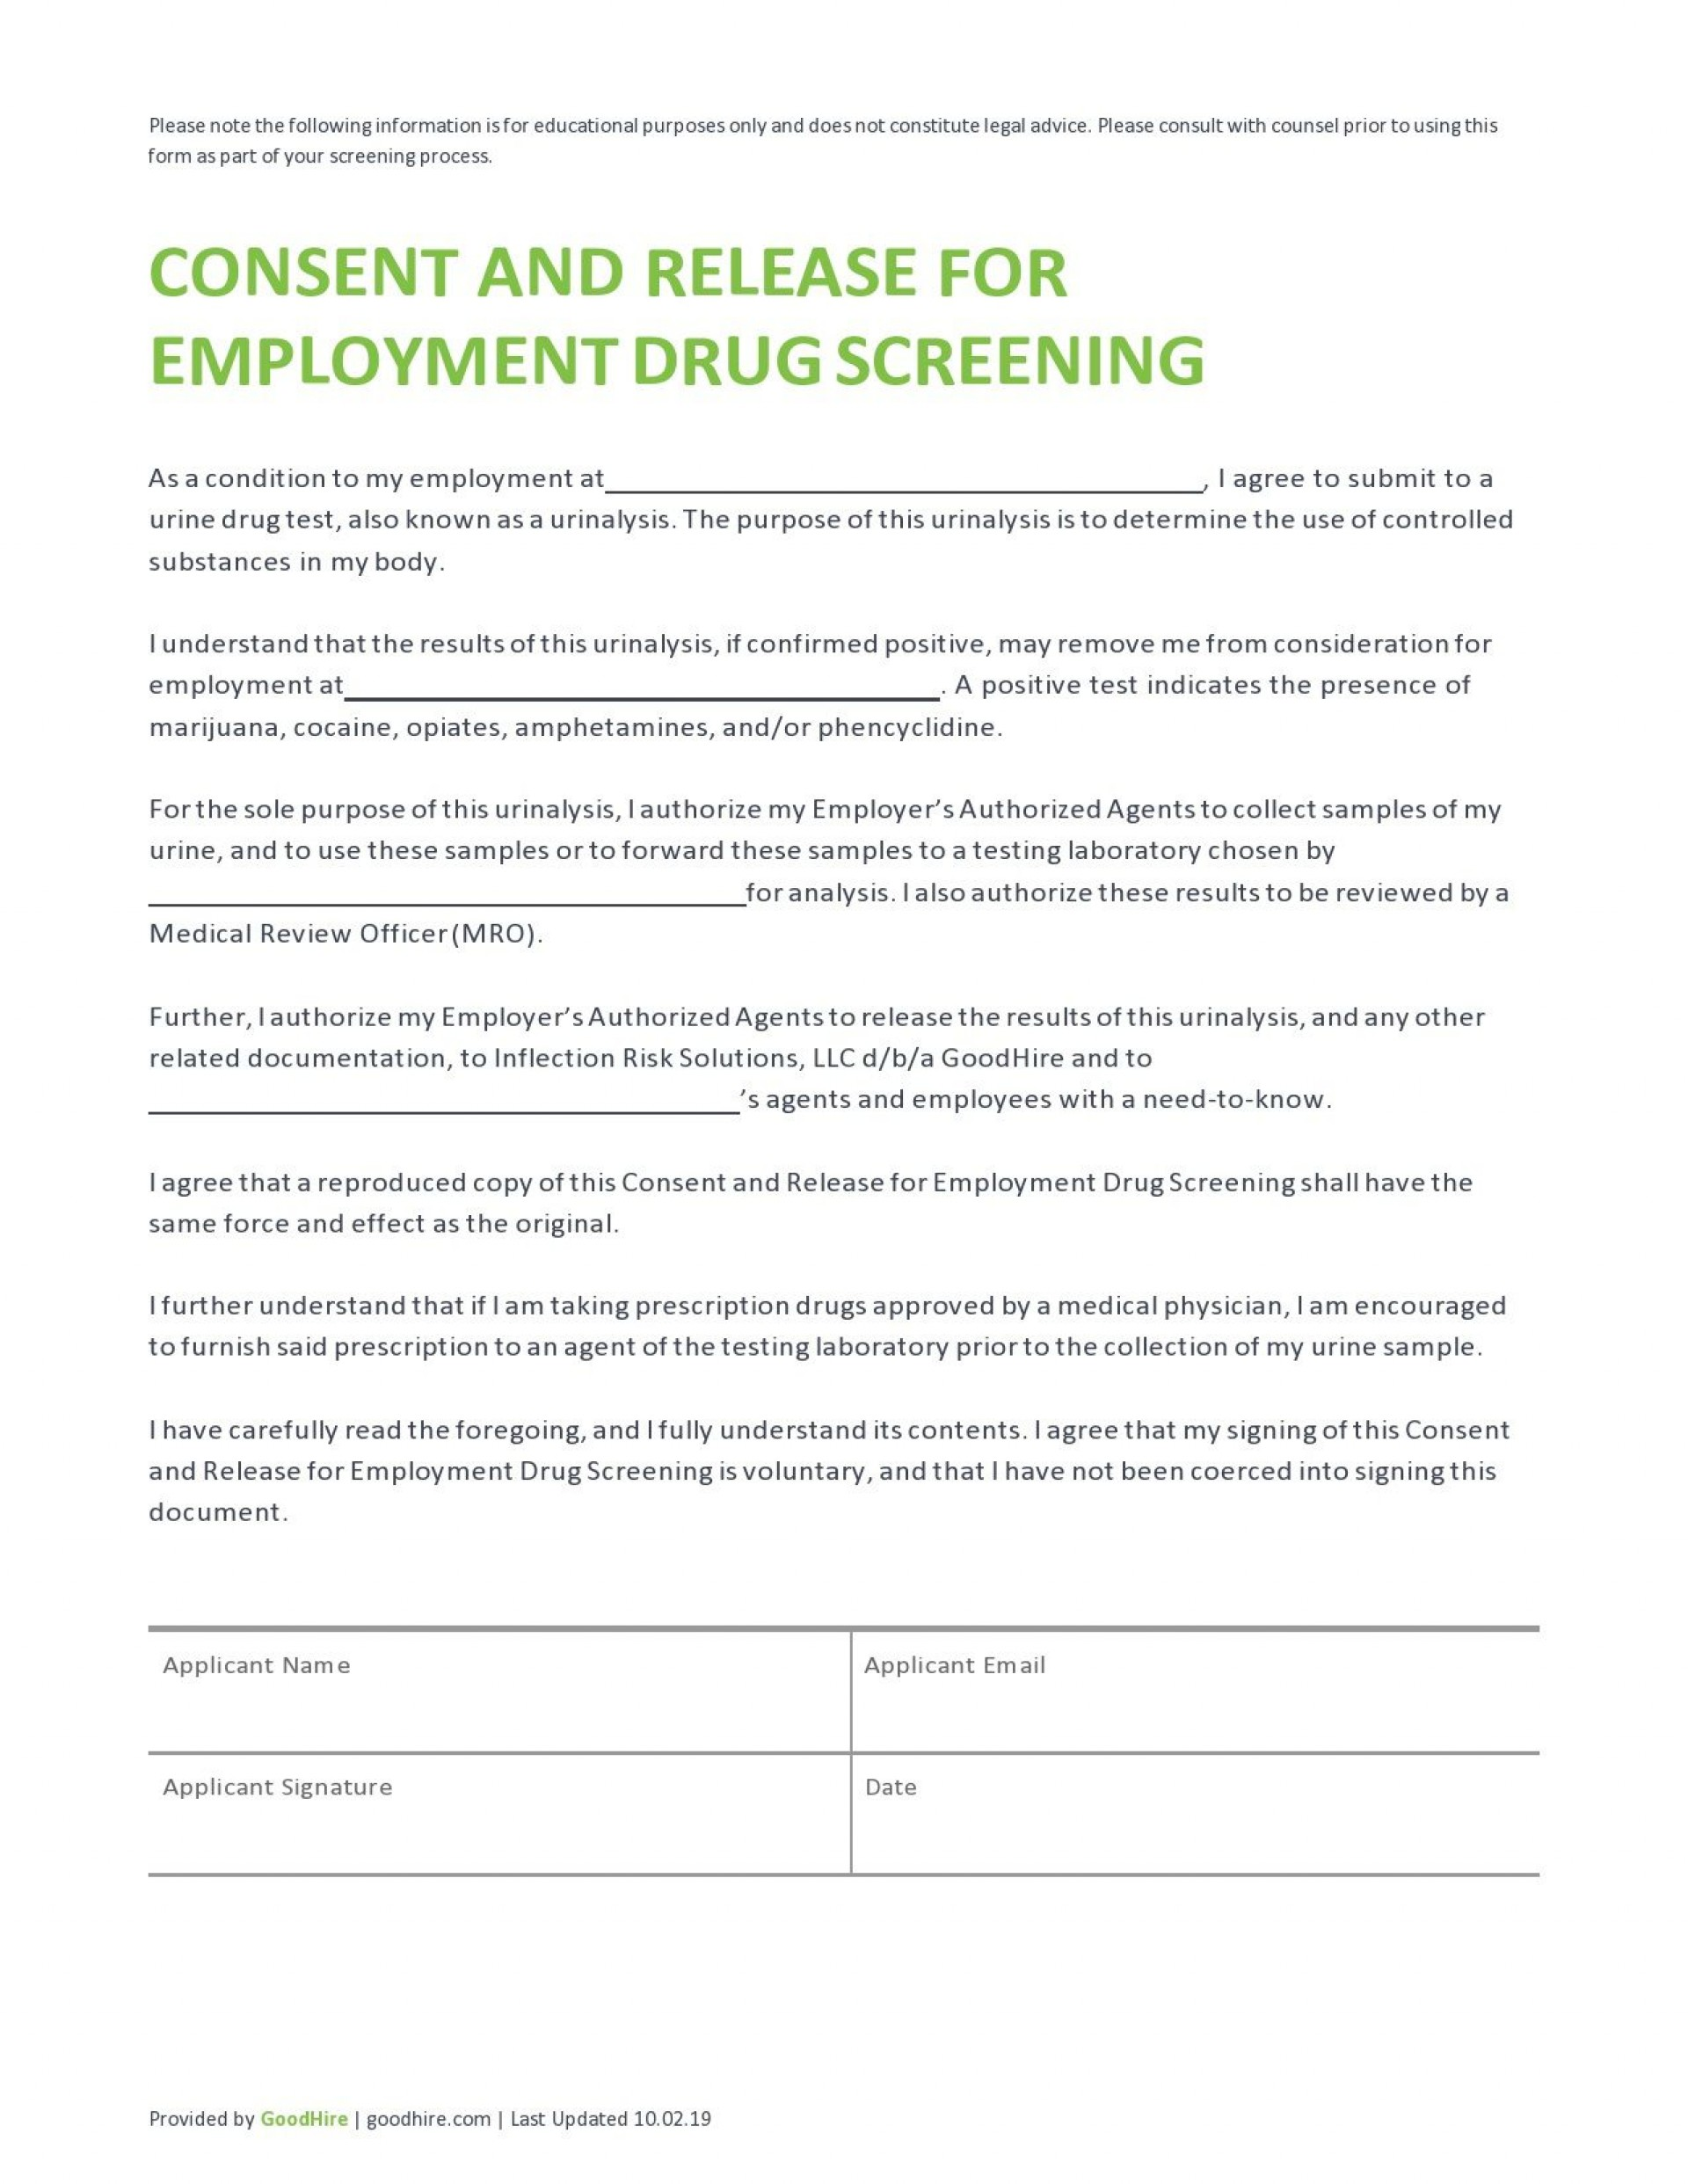 005 Shocking Background Check Form Template Free Inspiration  Authorization1920